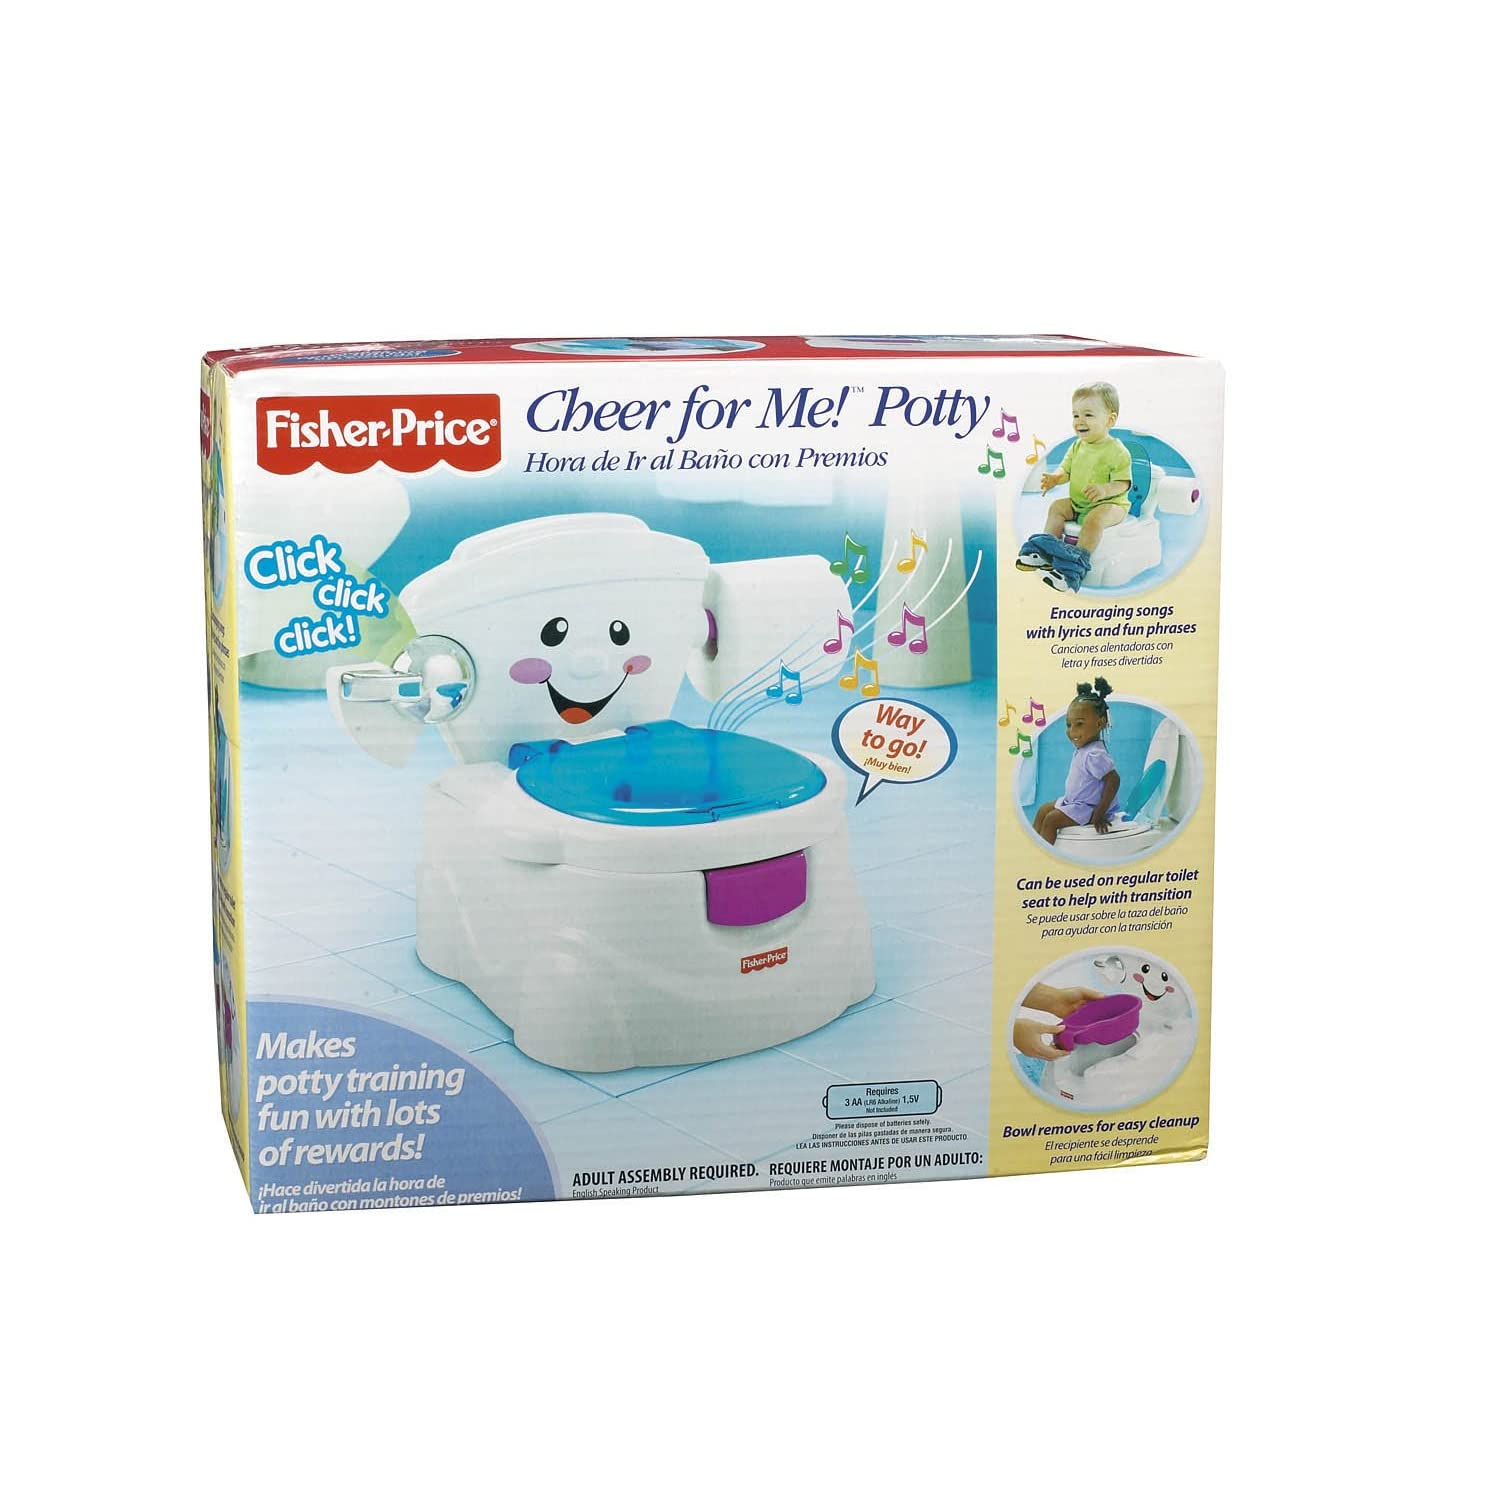 singing potty chair tilting office mechanism fisher price cheer for me realistic musical fun easy